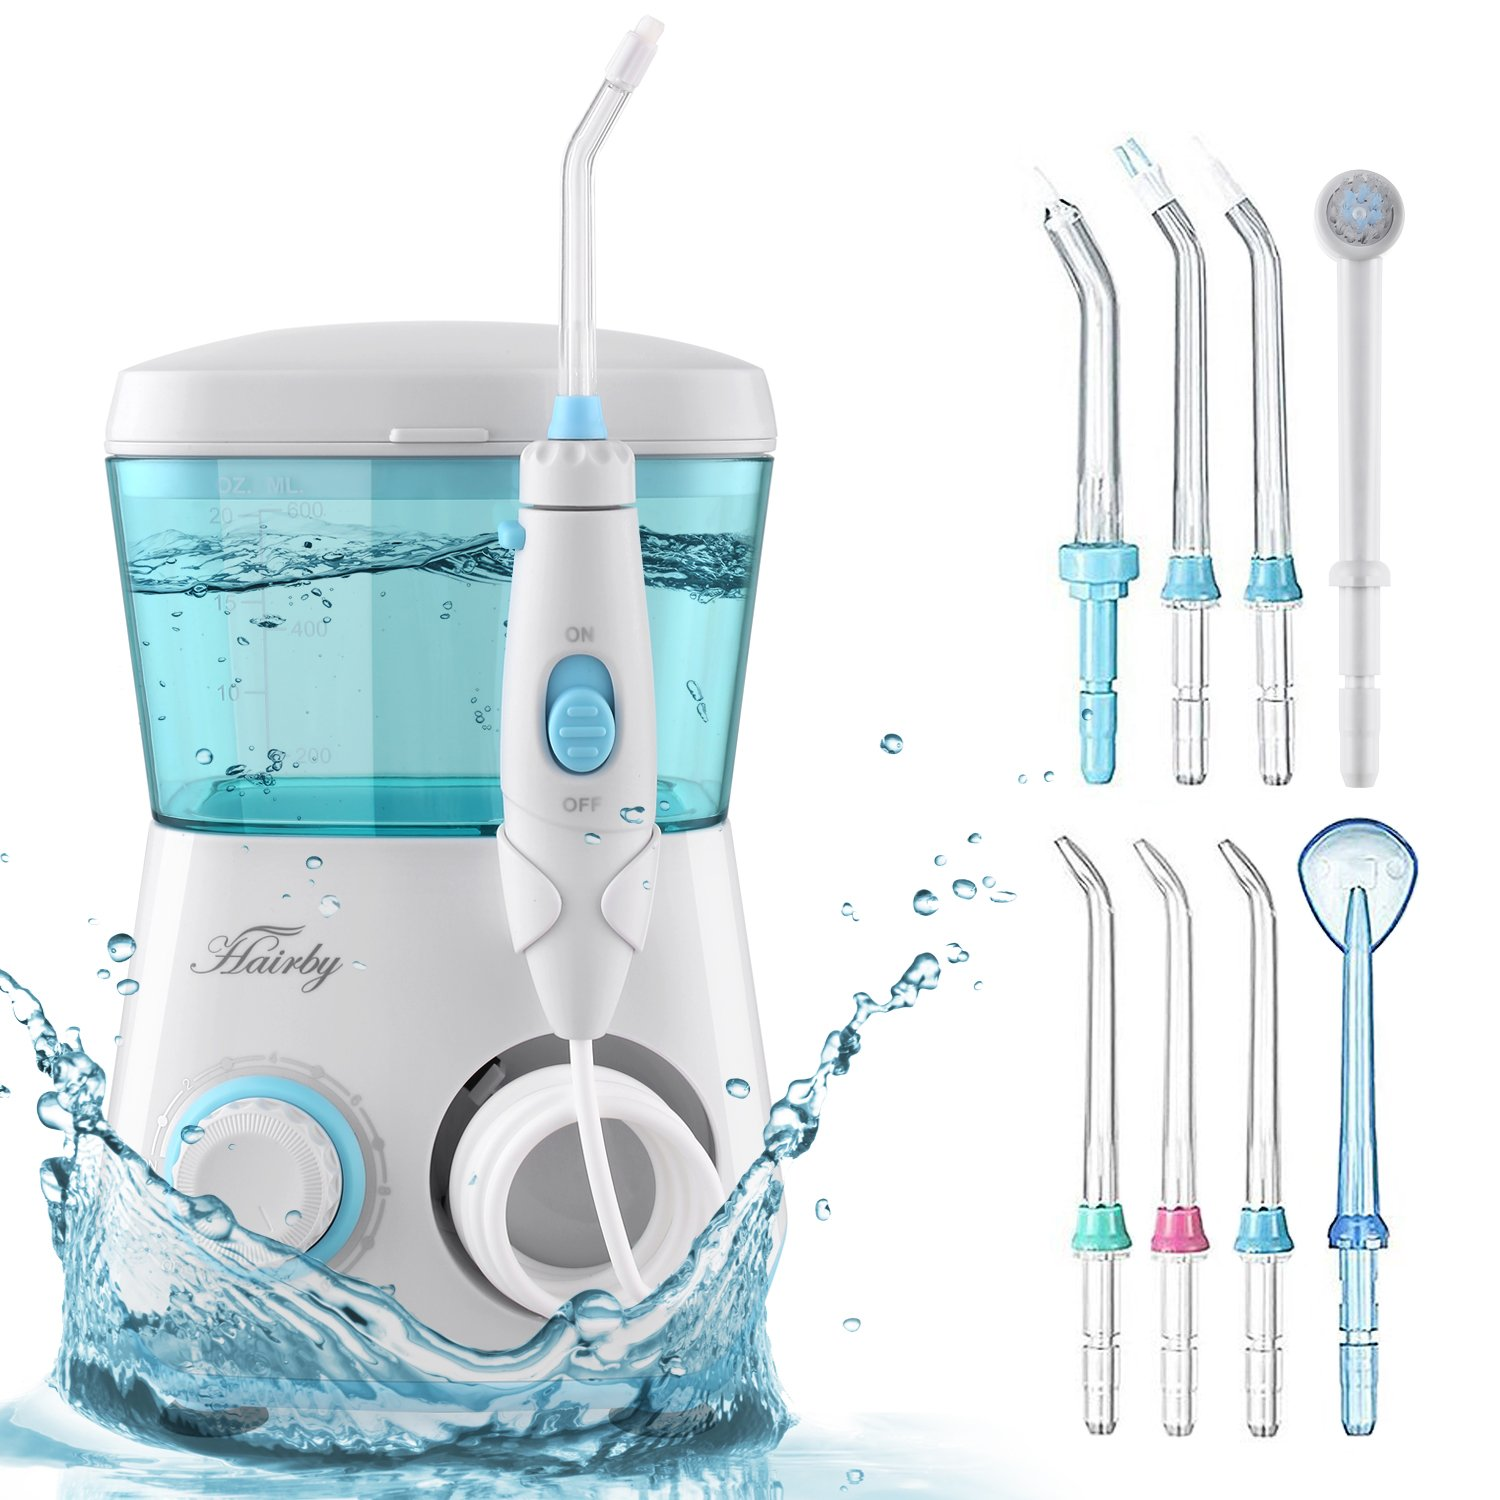 HAIRBY Water Flosser, Dental Oral Irrigator Waterproof Leakproof 600 ML Capacity with 7 Interchangeable Water Jet Tips for Teeth, Gumline, Braces, Bridges Cleaning, Travel and Family Use